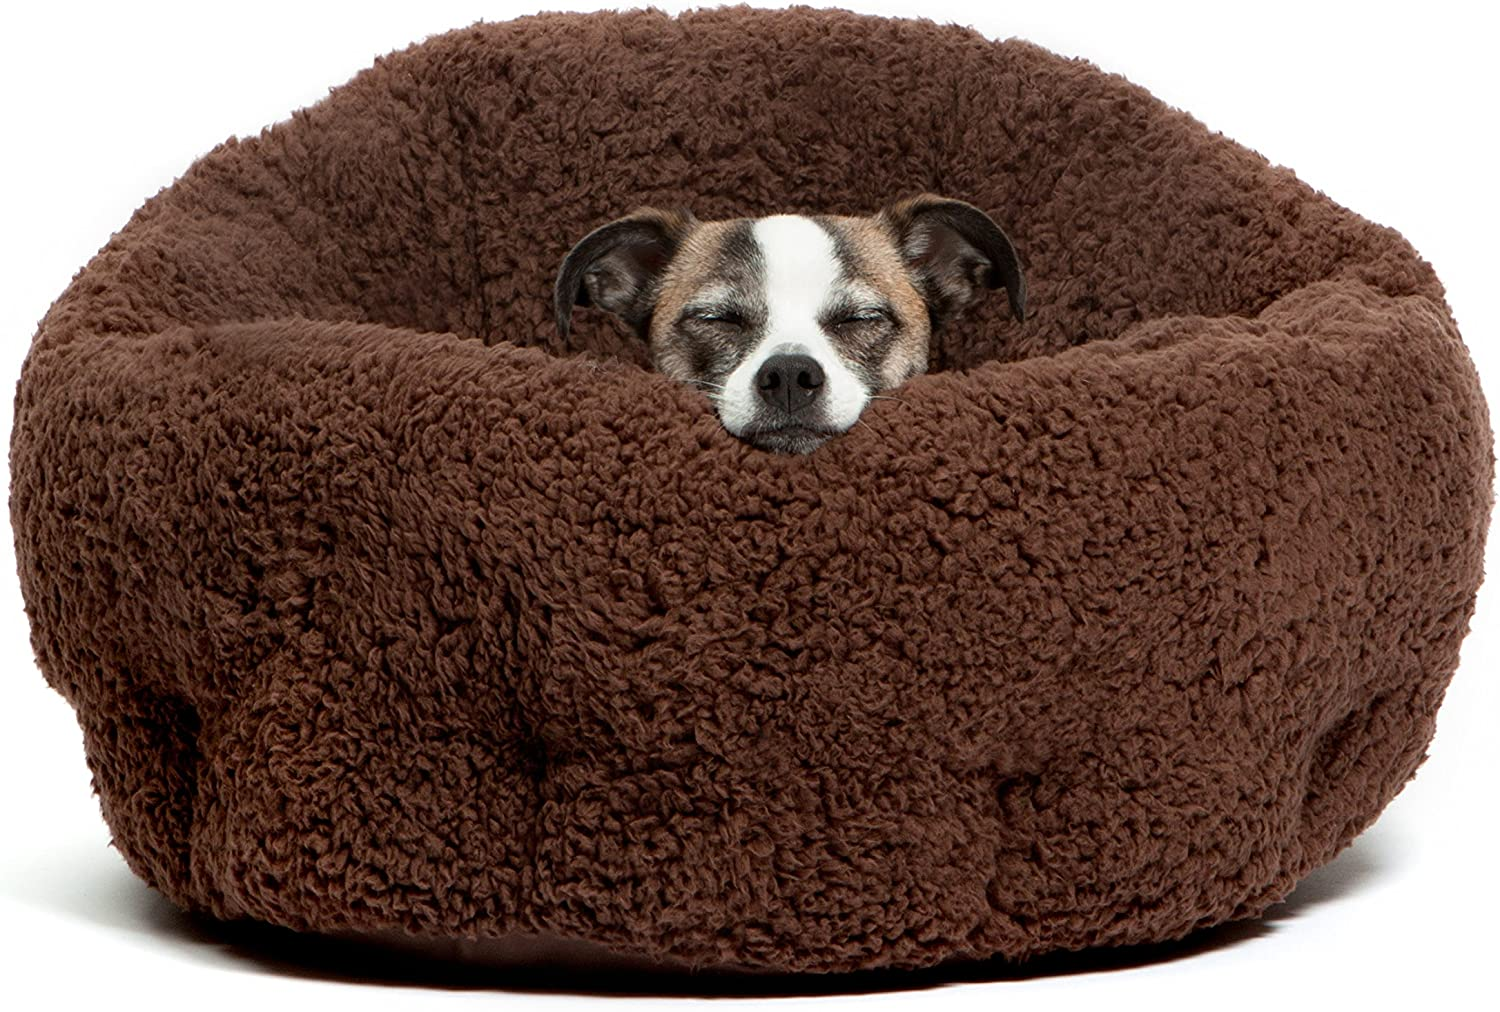 """Best Friends by Sheri OrthoComfort Deep Dish Cuddler (20x20x12"""") - Self-Warming Cat and Dog Bed, Brown : Pet Beds : Pet Supplies"""